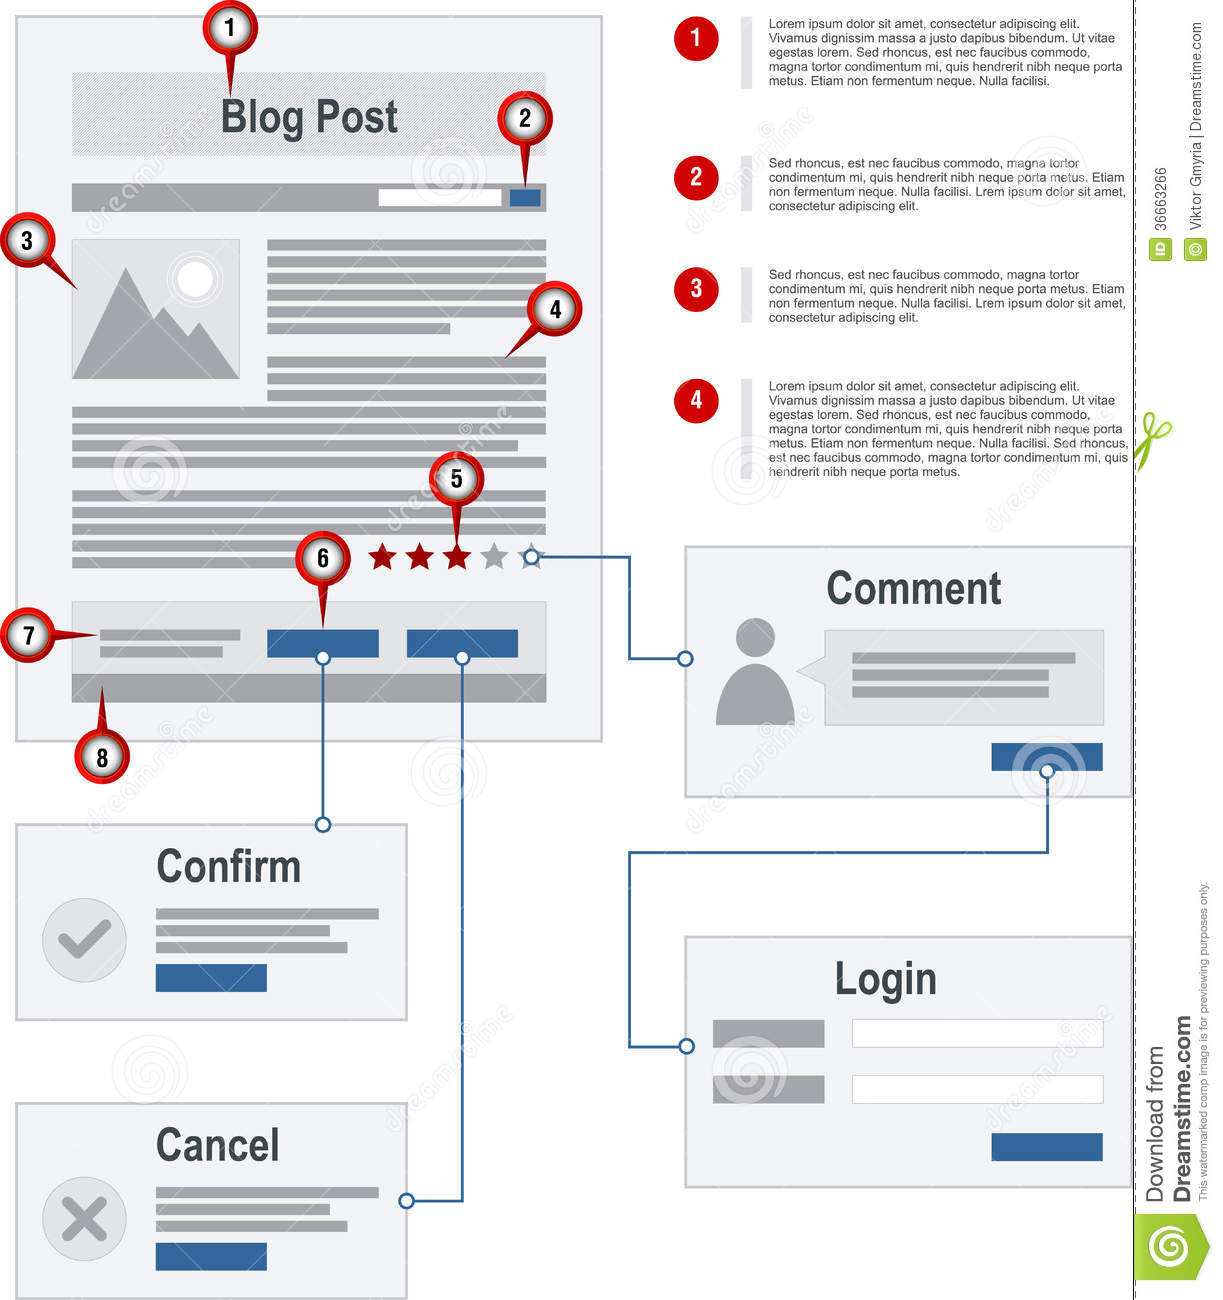 Sitemap Internet: Internet Blog Site Map Navigation Structure Protot Stock